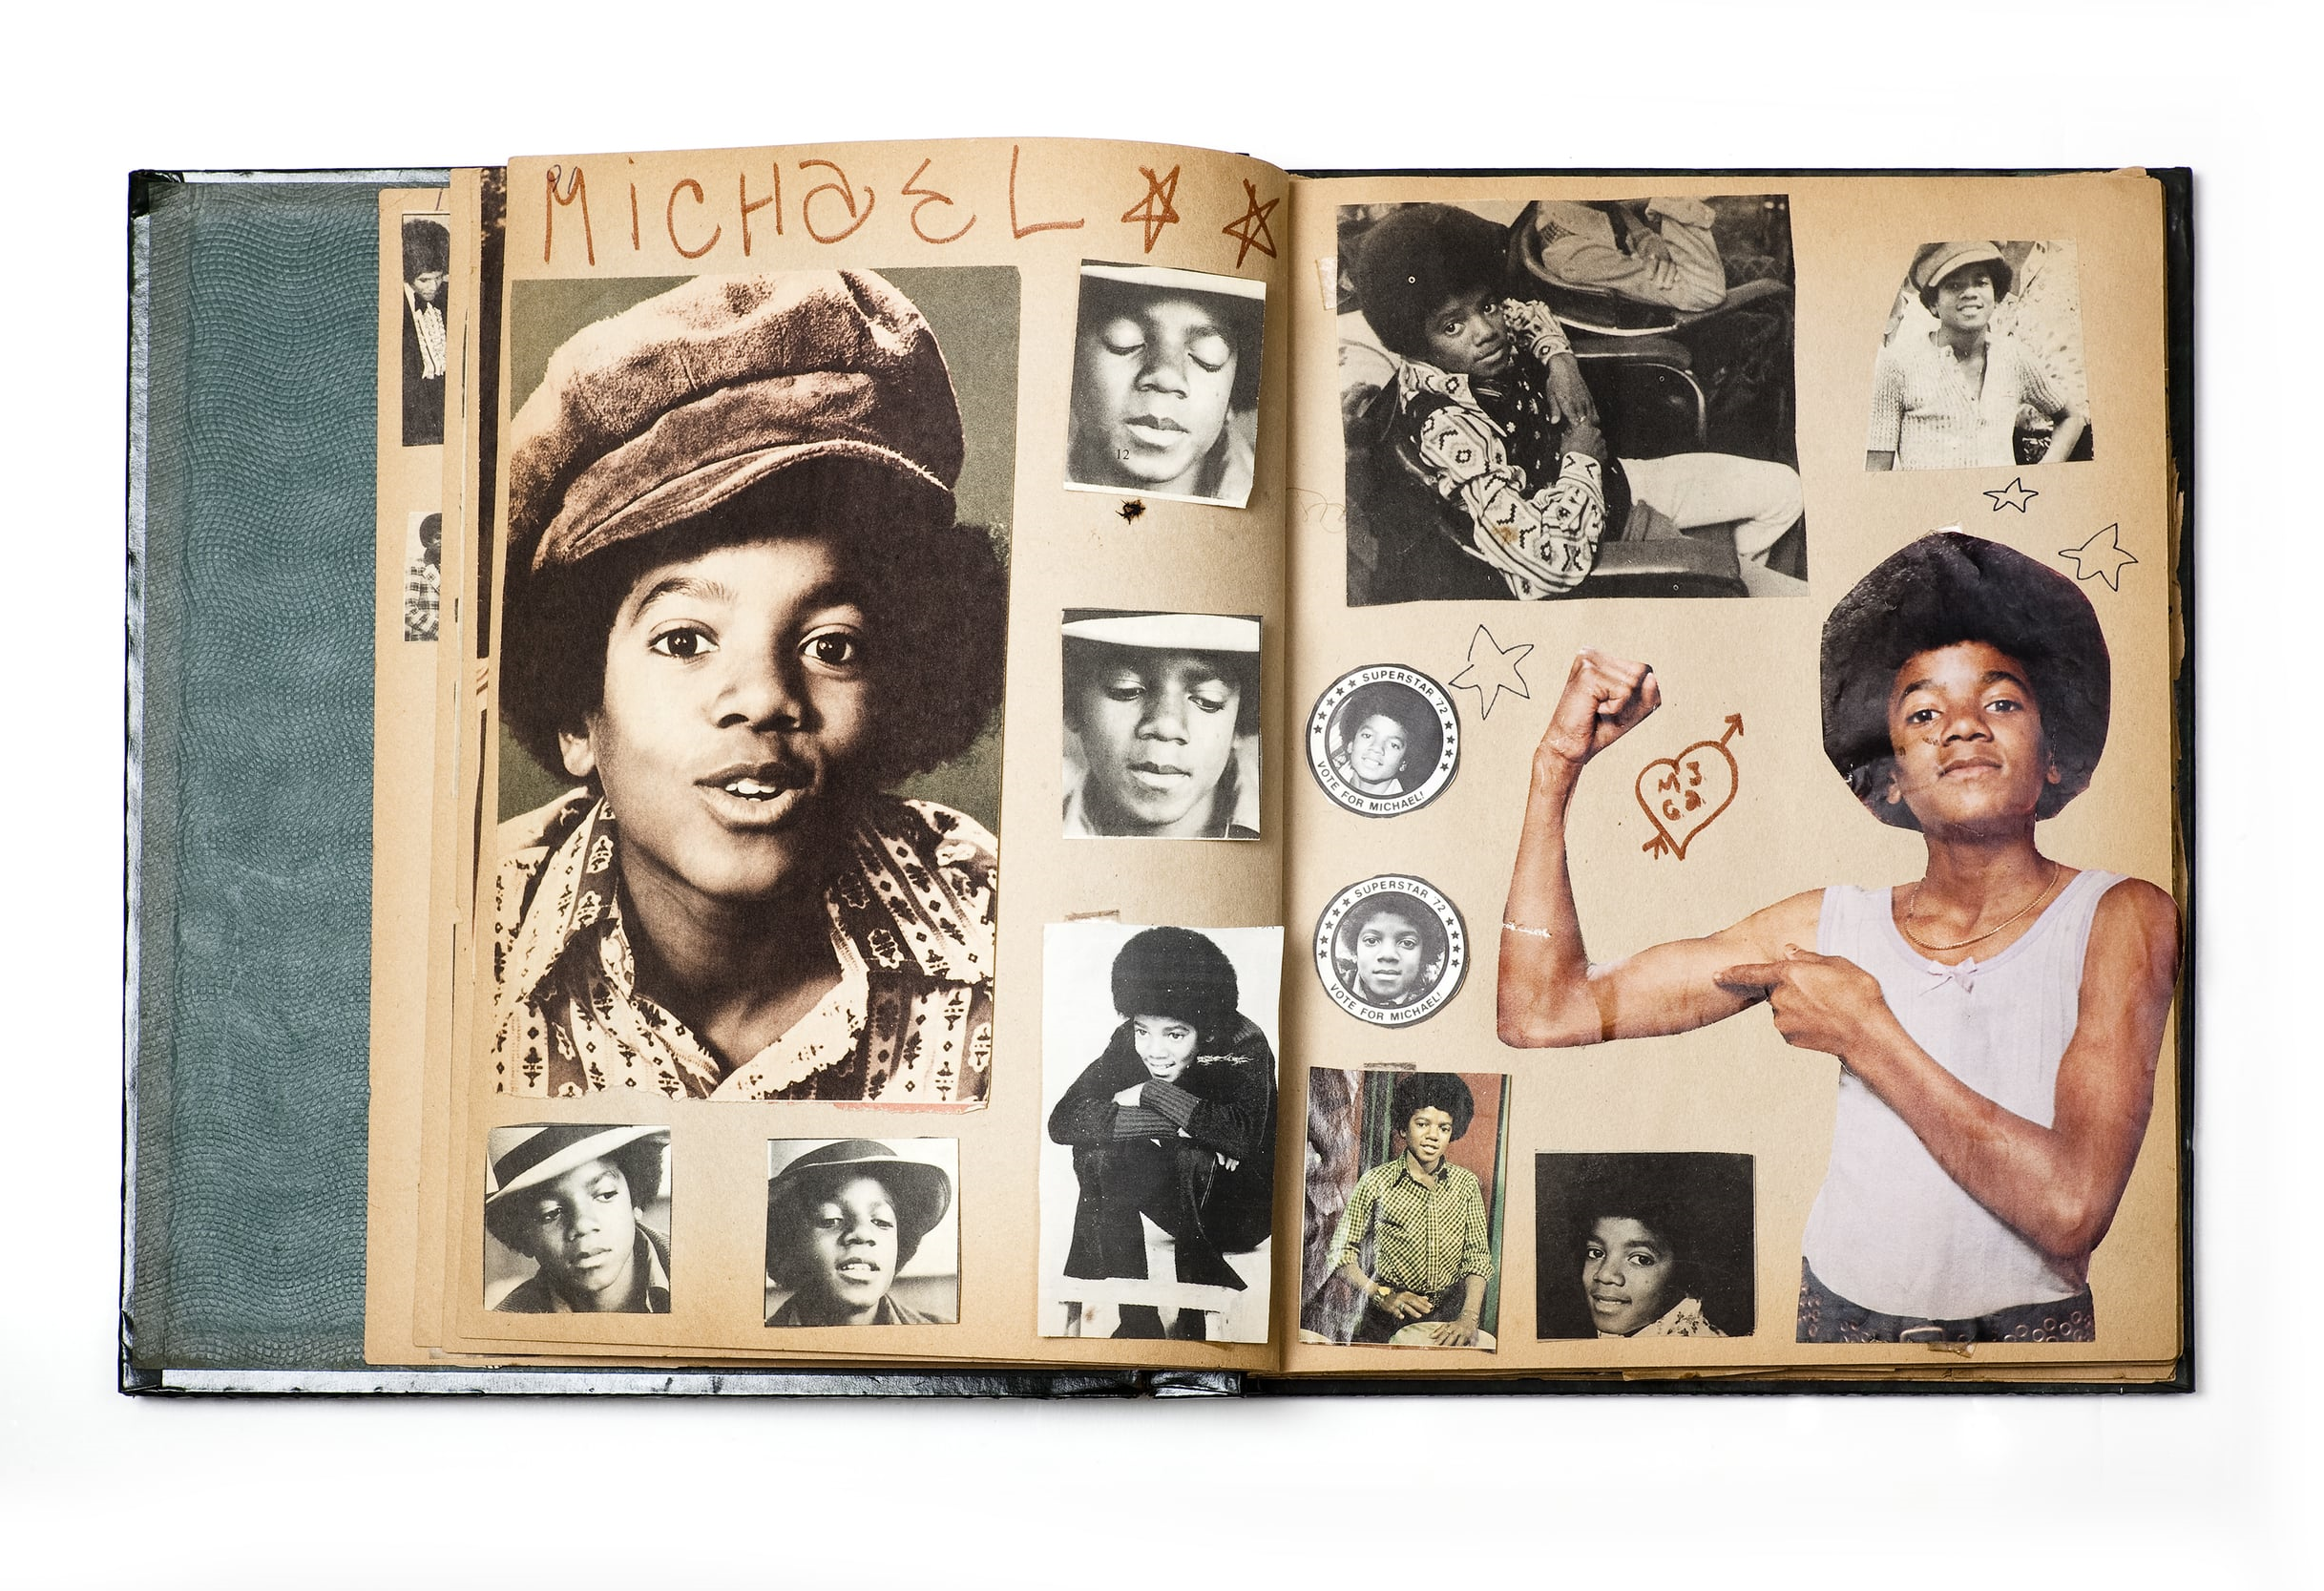 Jackson Five scrapbook, 1972